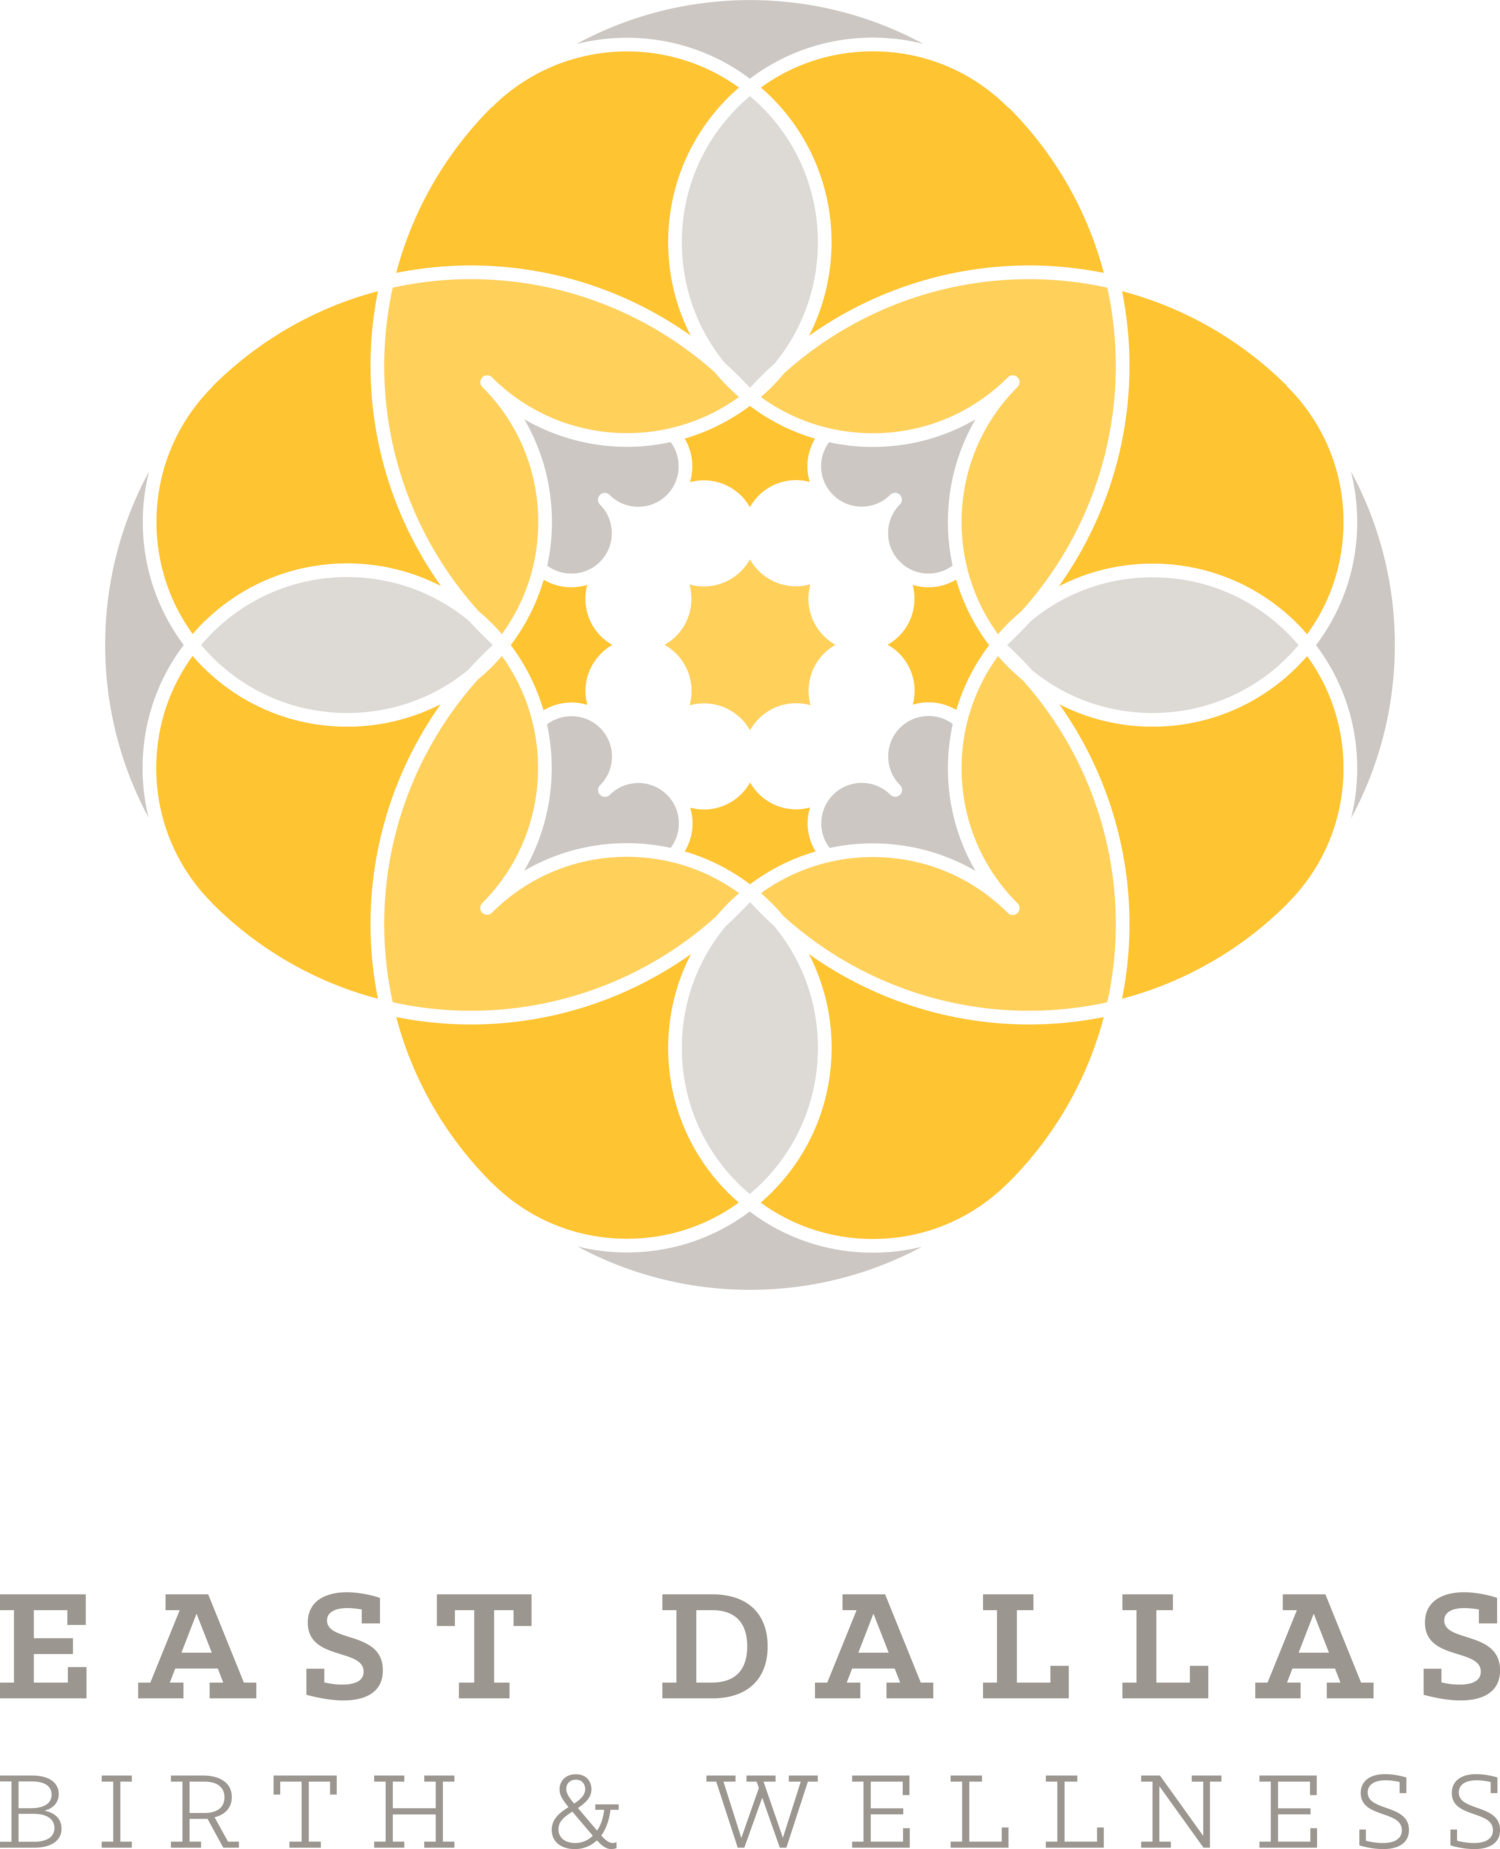 East Dallas Birth & Wellness